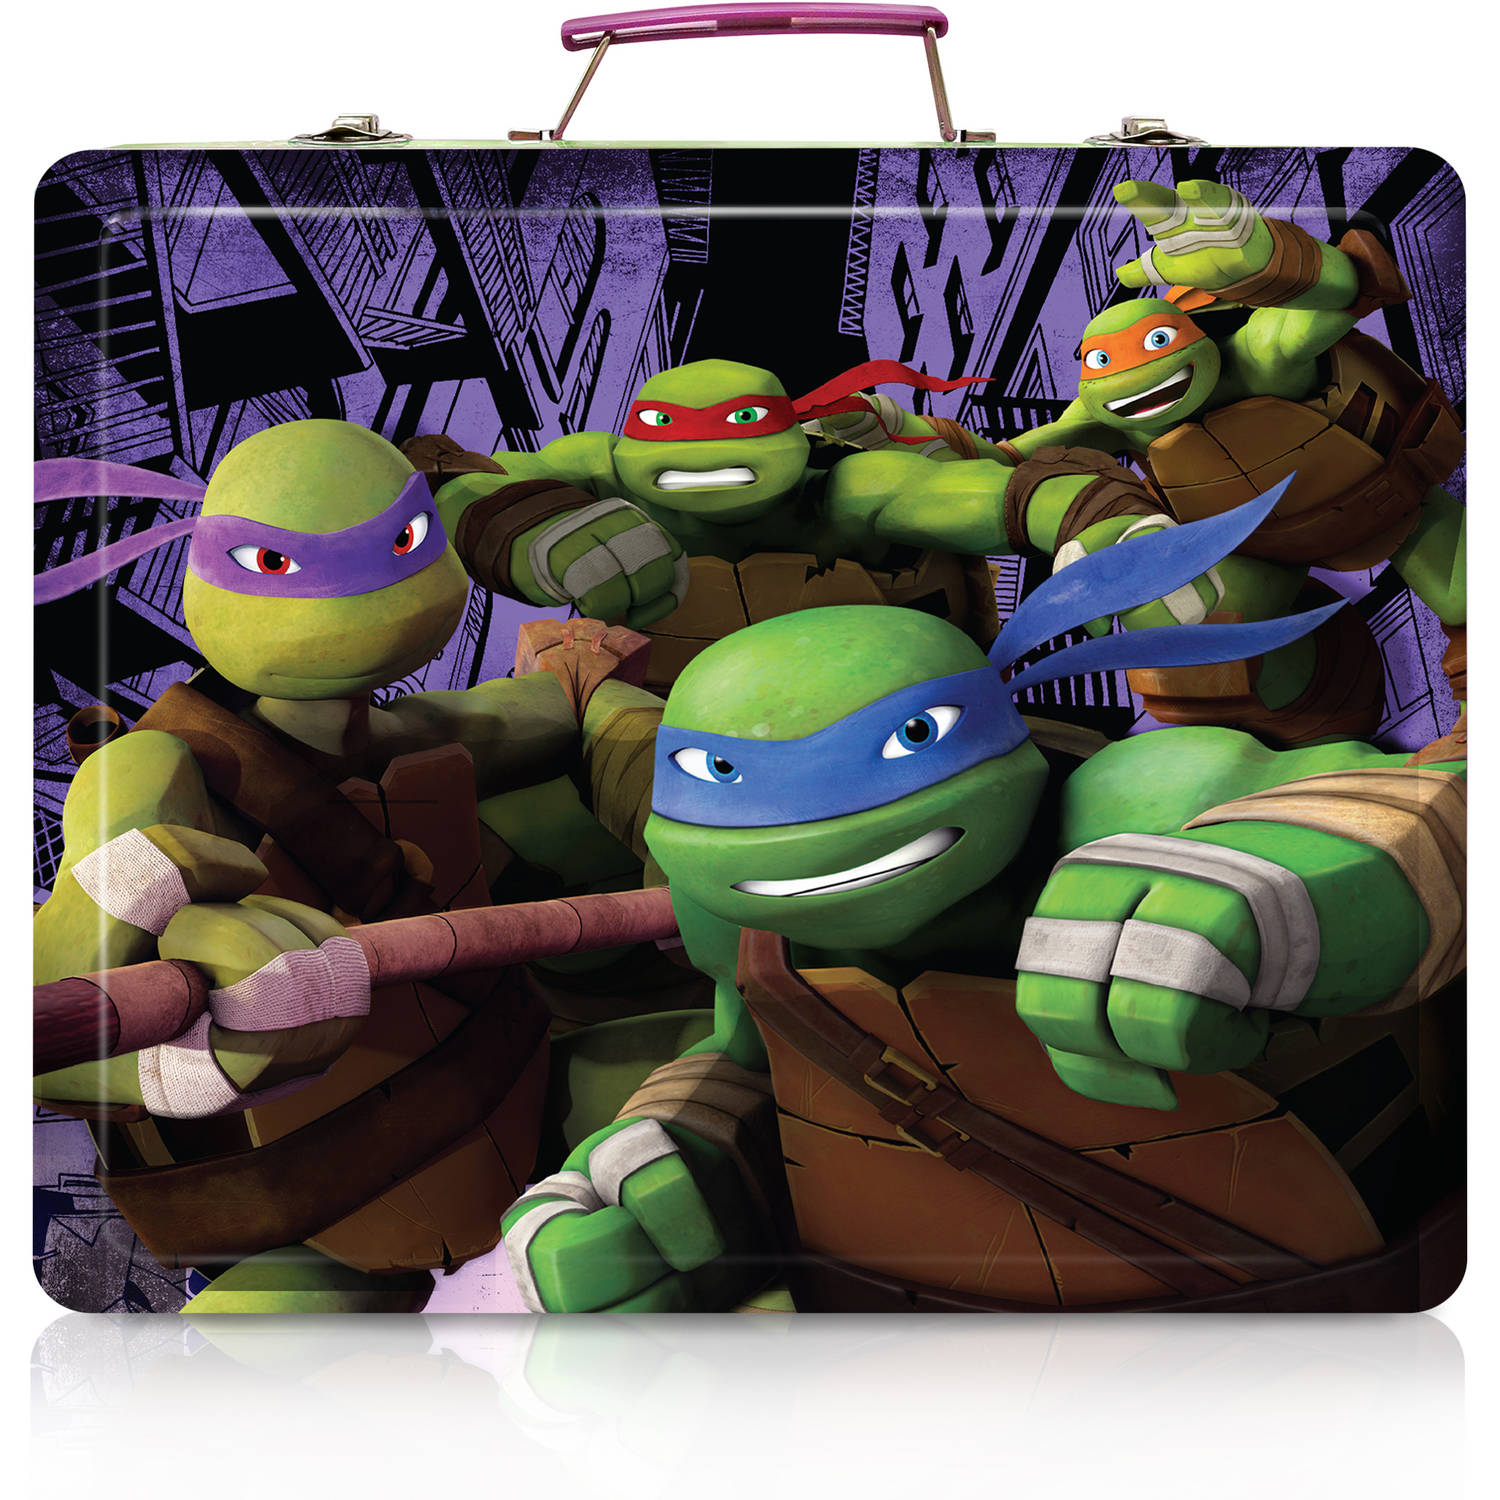 Nickelodeon Teenage Mutant Ninja Turtles Deluxe Stationery and Art Set with Over 150... by INNOVATIVE DESIGNS